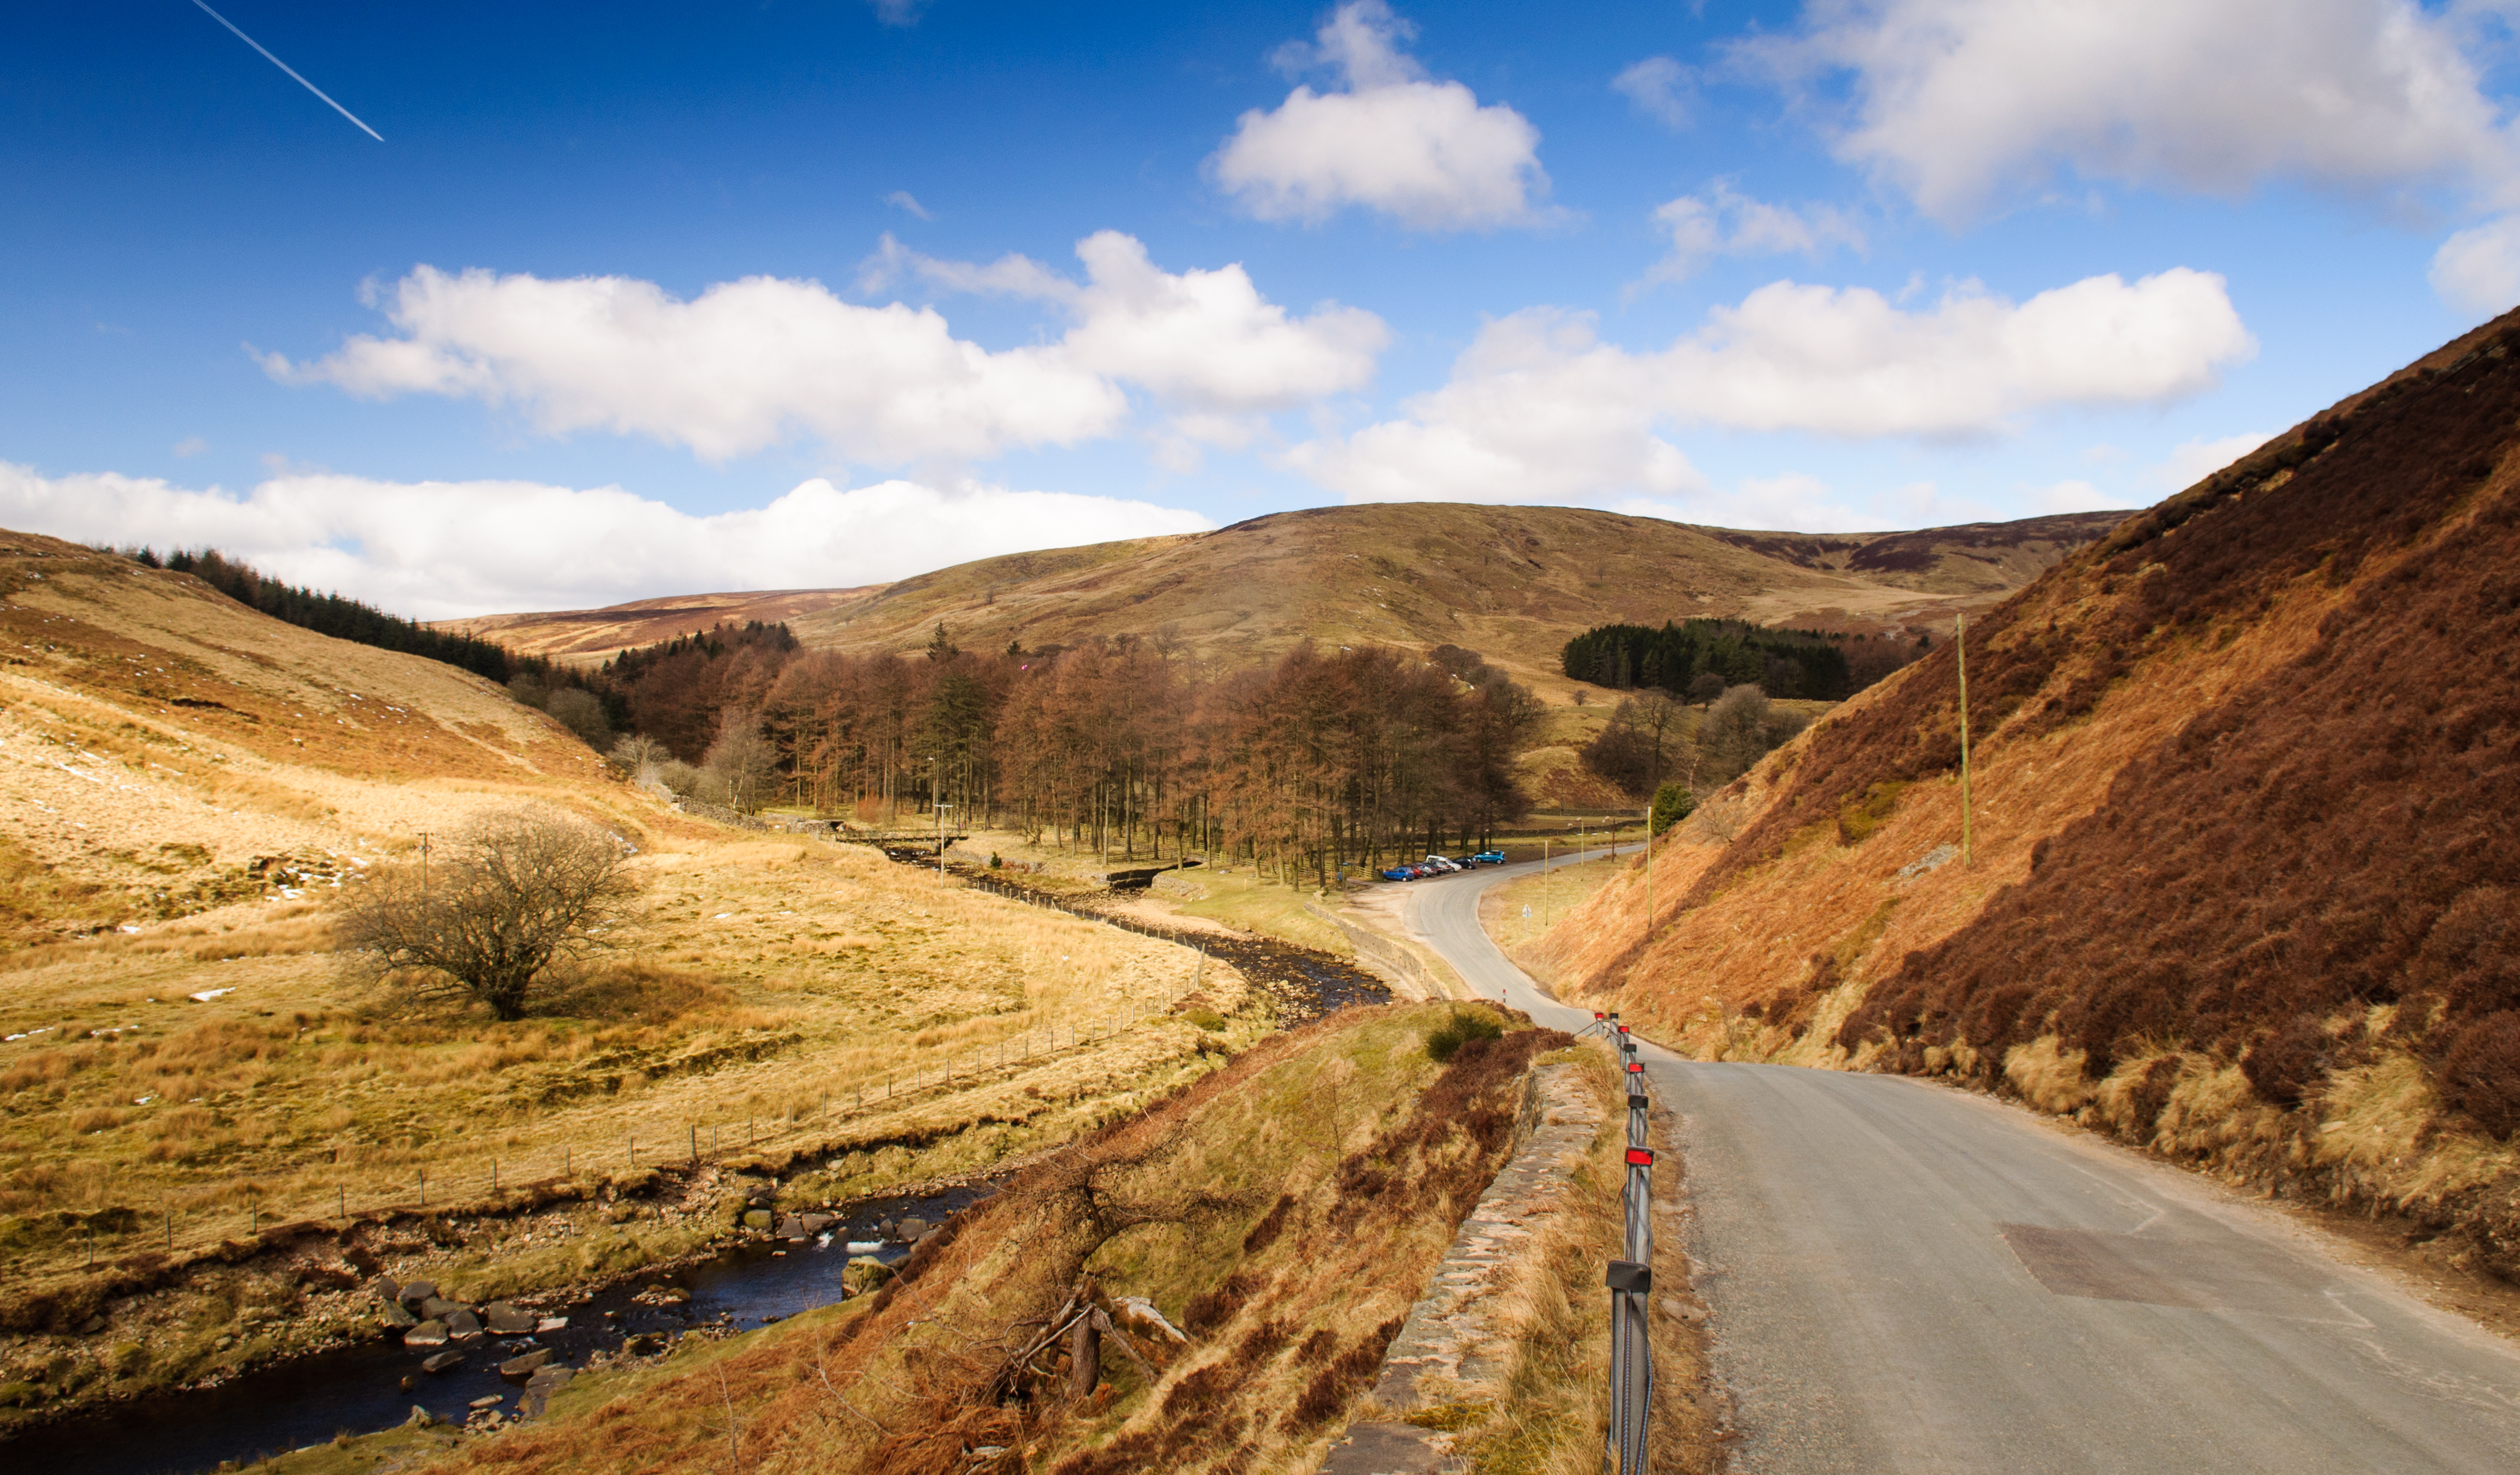 A single track country lane runs through the valley of the Trough of Bowland in the remote Forest of Bowland area of Lancashire, England.